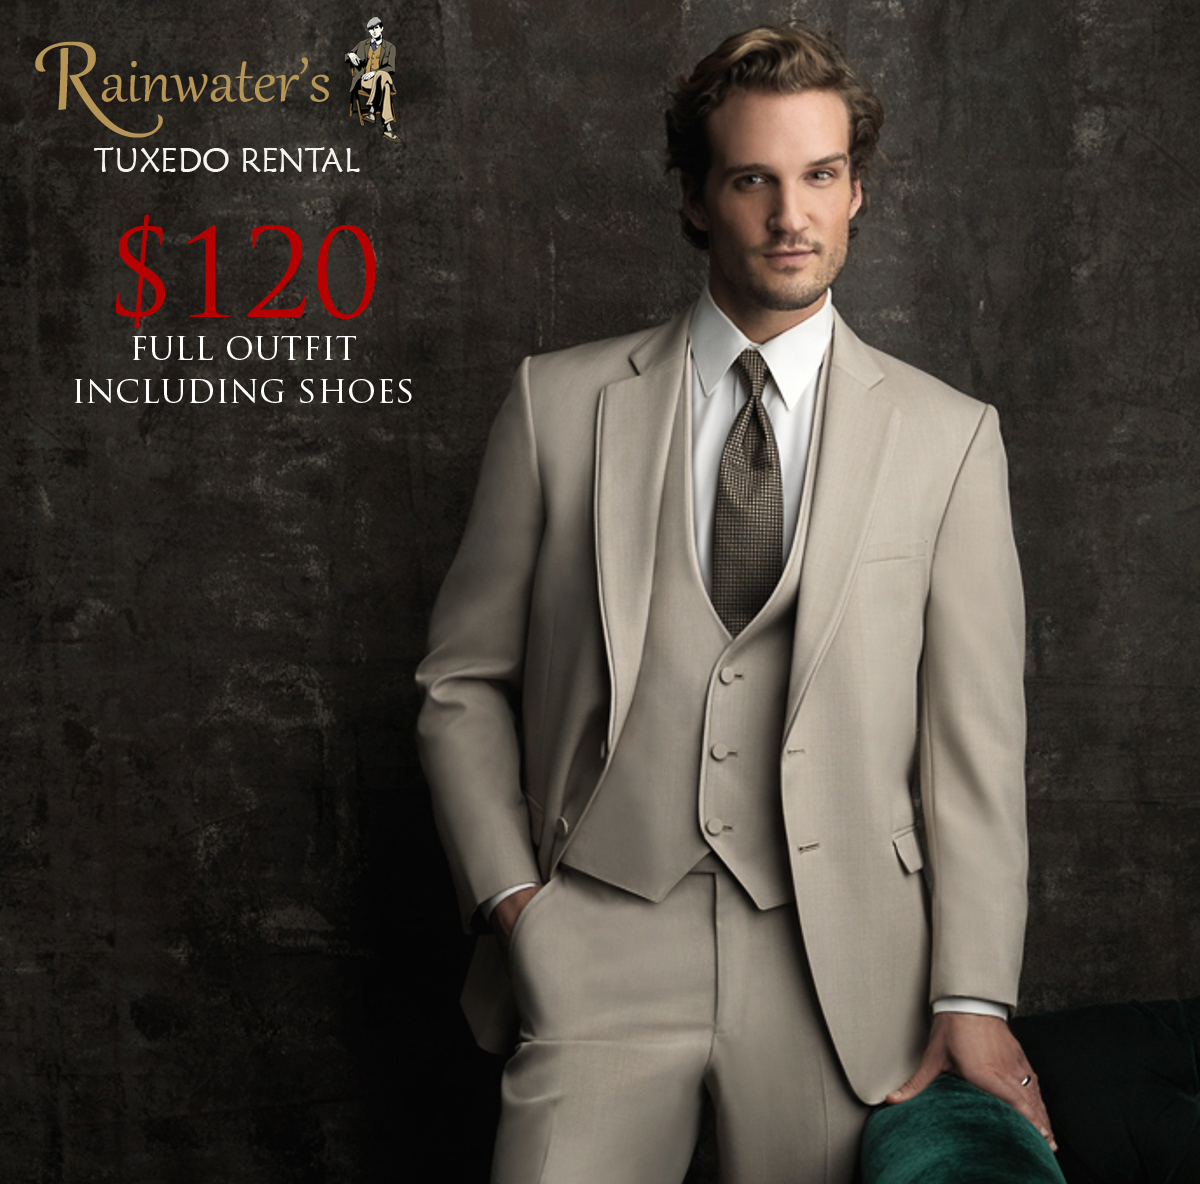 Wedding Tuxedo Rental Be The Most Handsome Groom At The Best Price Cardinal Bridal